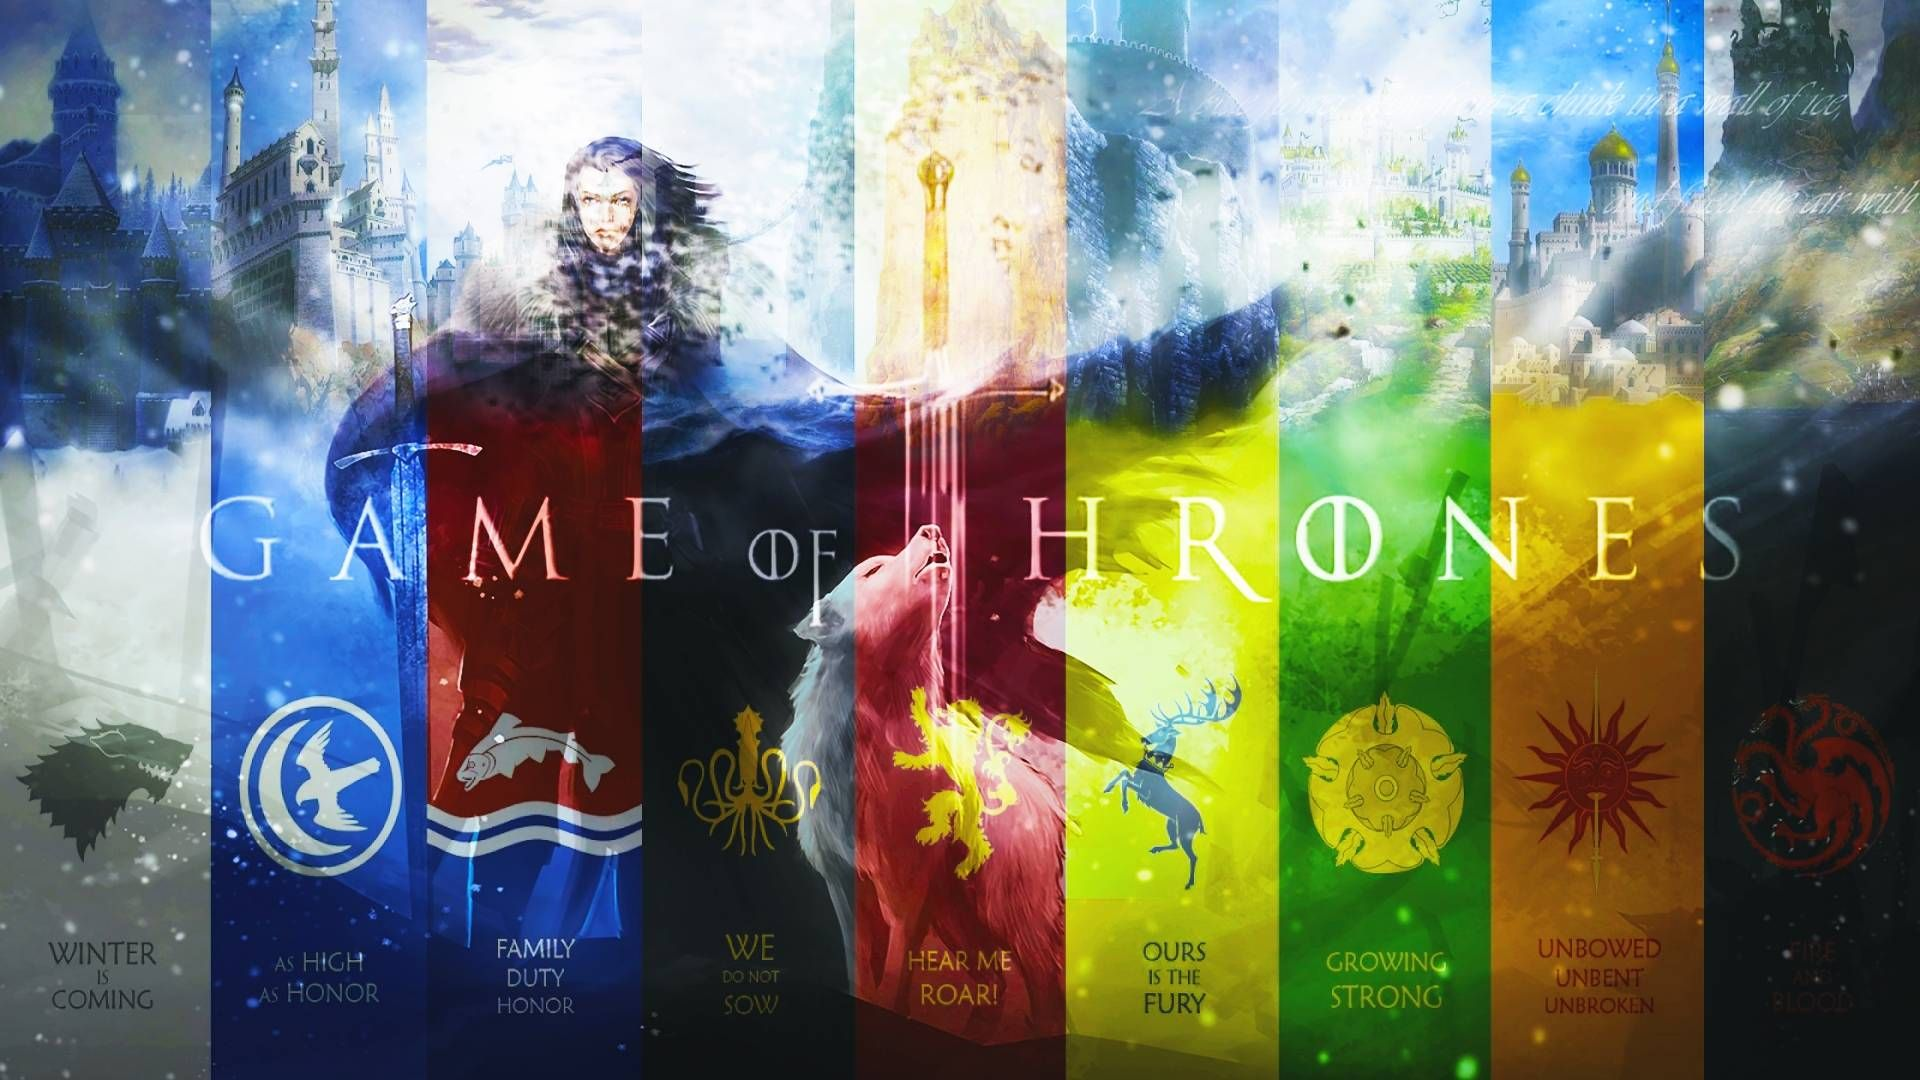 game of thrones desktop backgrounds wallpaper game of thrones desktop backgrounds photo game of thrones desktop backgrounds hd game of thrones desktop